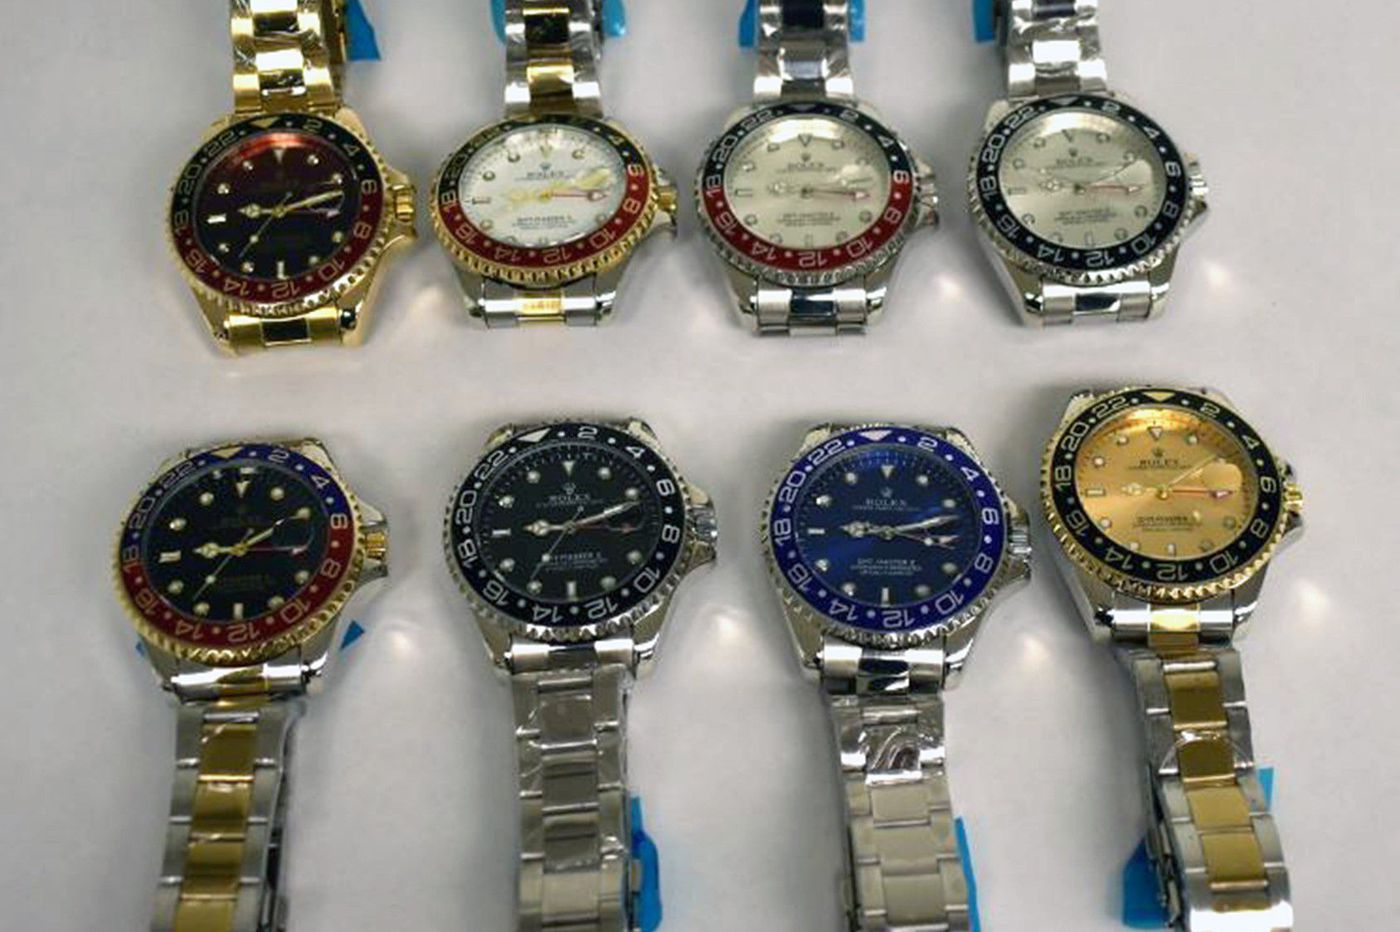 Fake Rolex watches seized in Philly